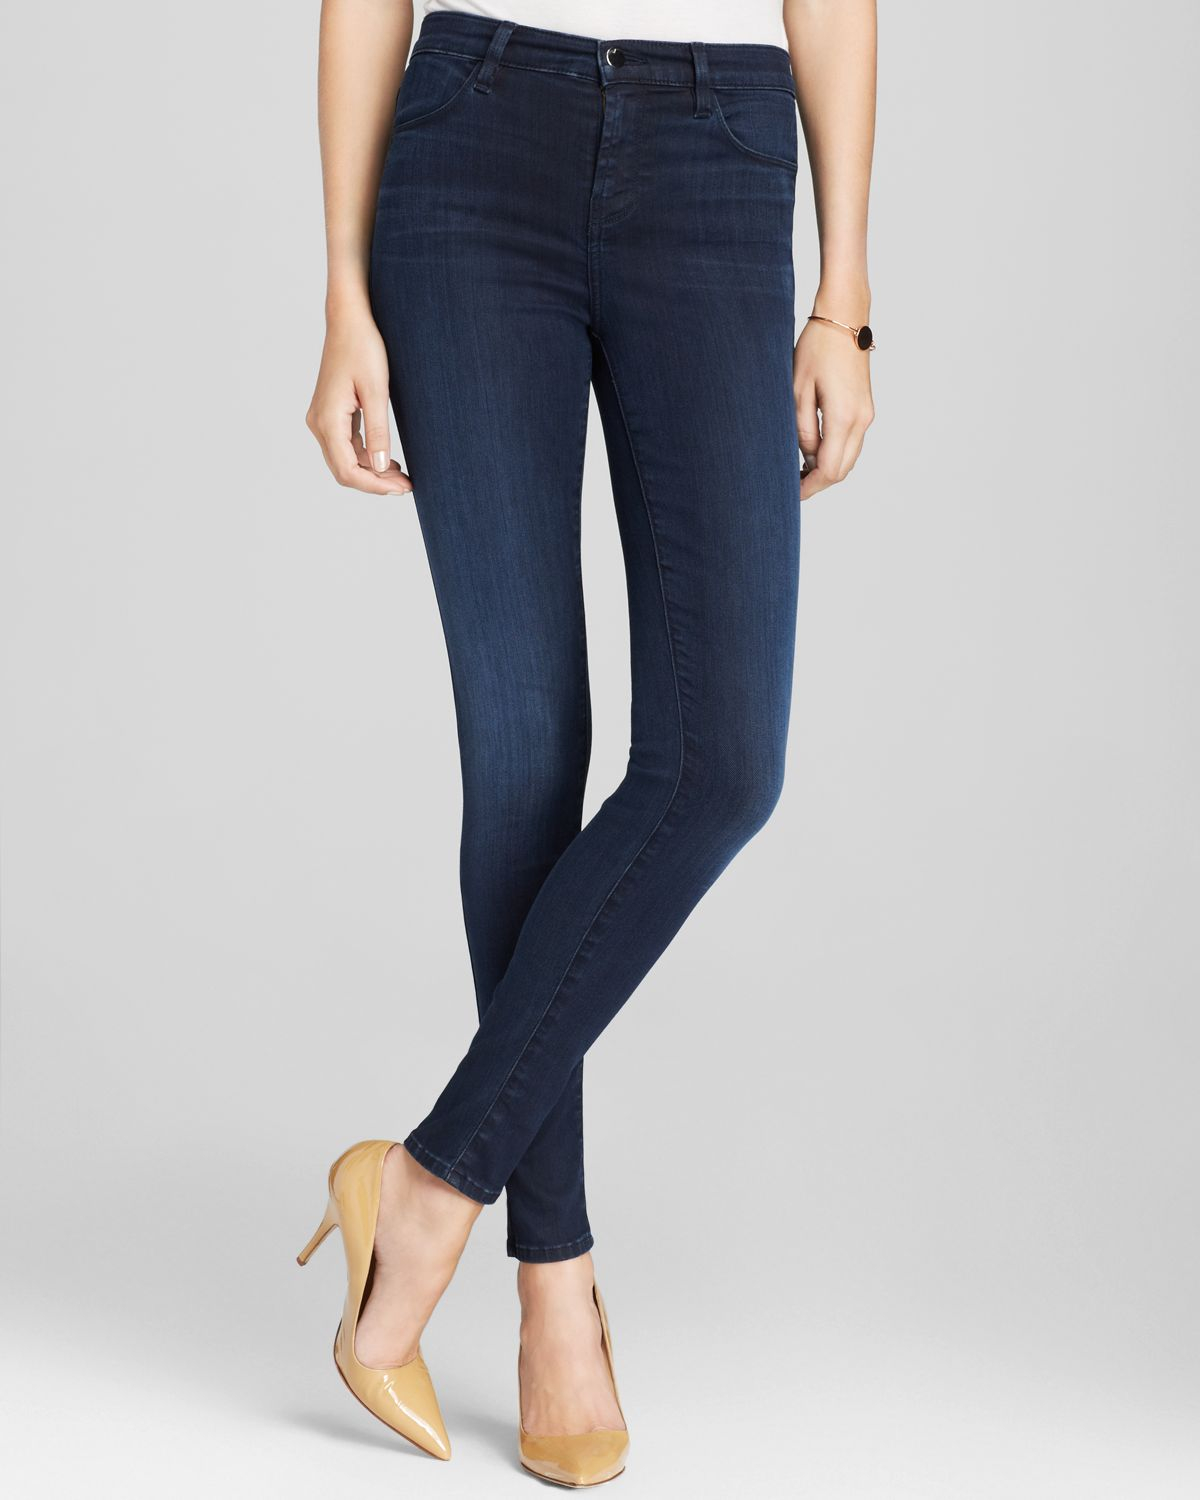 8c57e2d54d97 Gallery. Previously sold at  Bloomingdale s · Women s J Brand Maria Women s  Blue Bell Jeans ...